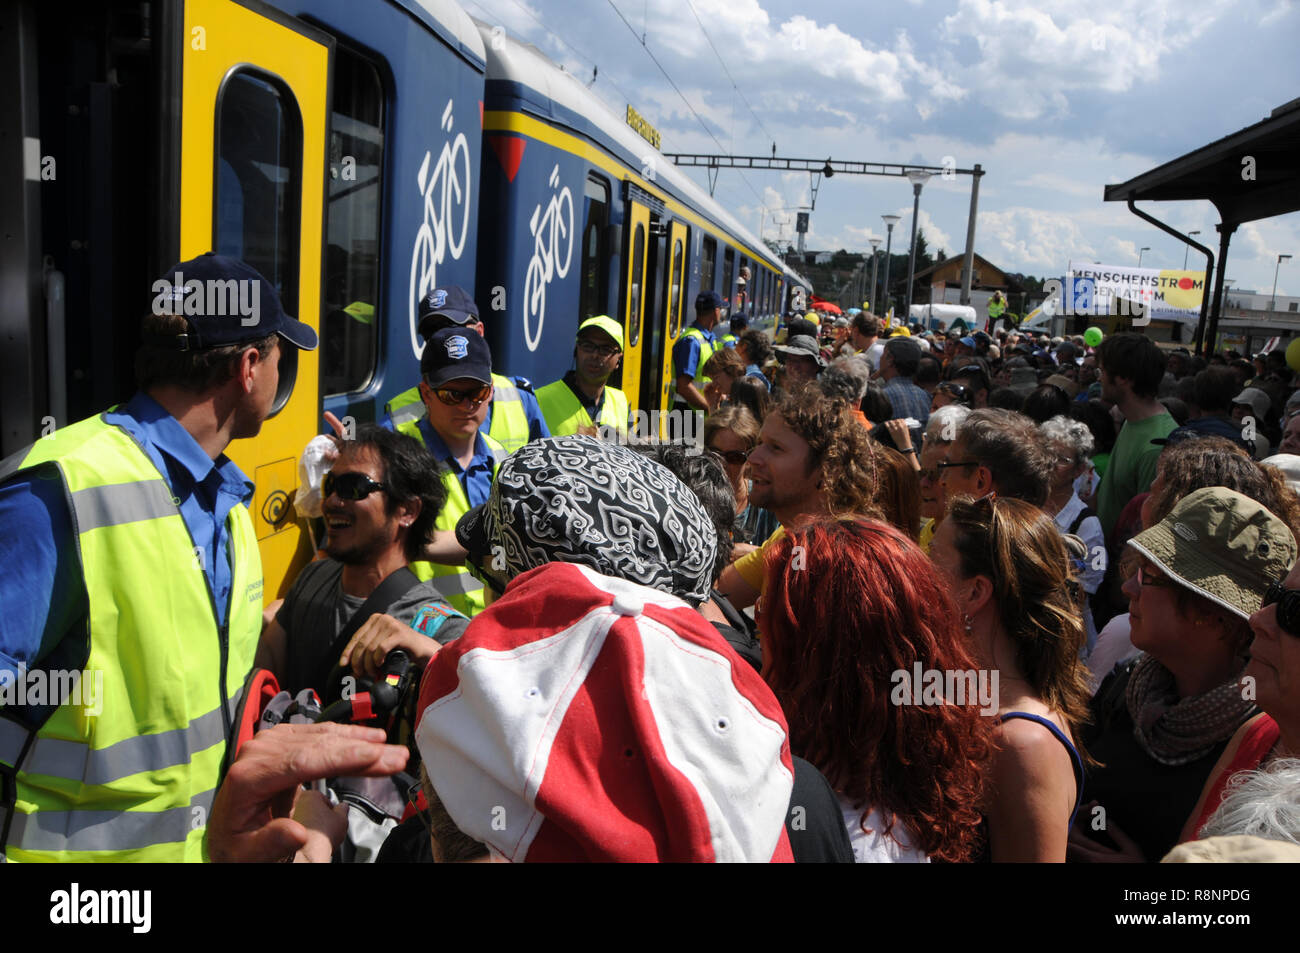 Thousands of people entering the SBB-trains in Döttingen after the anti nuclear protest in Beznau. - Stock Image